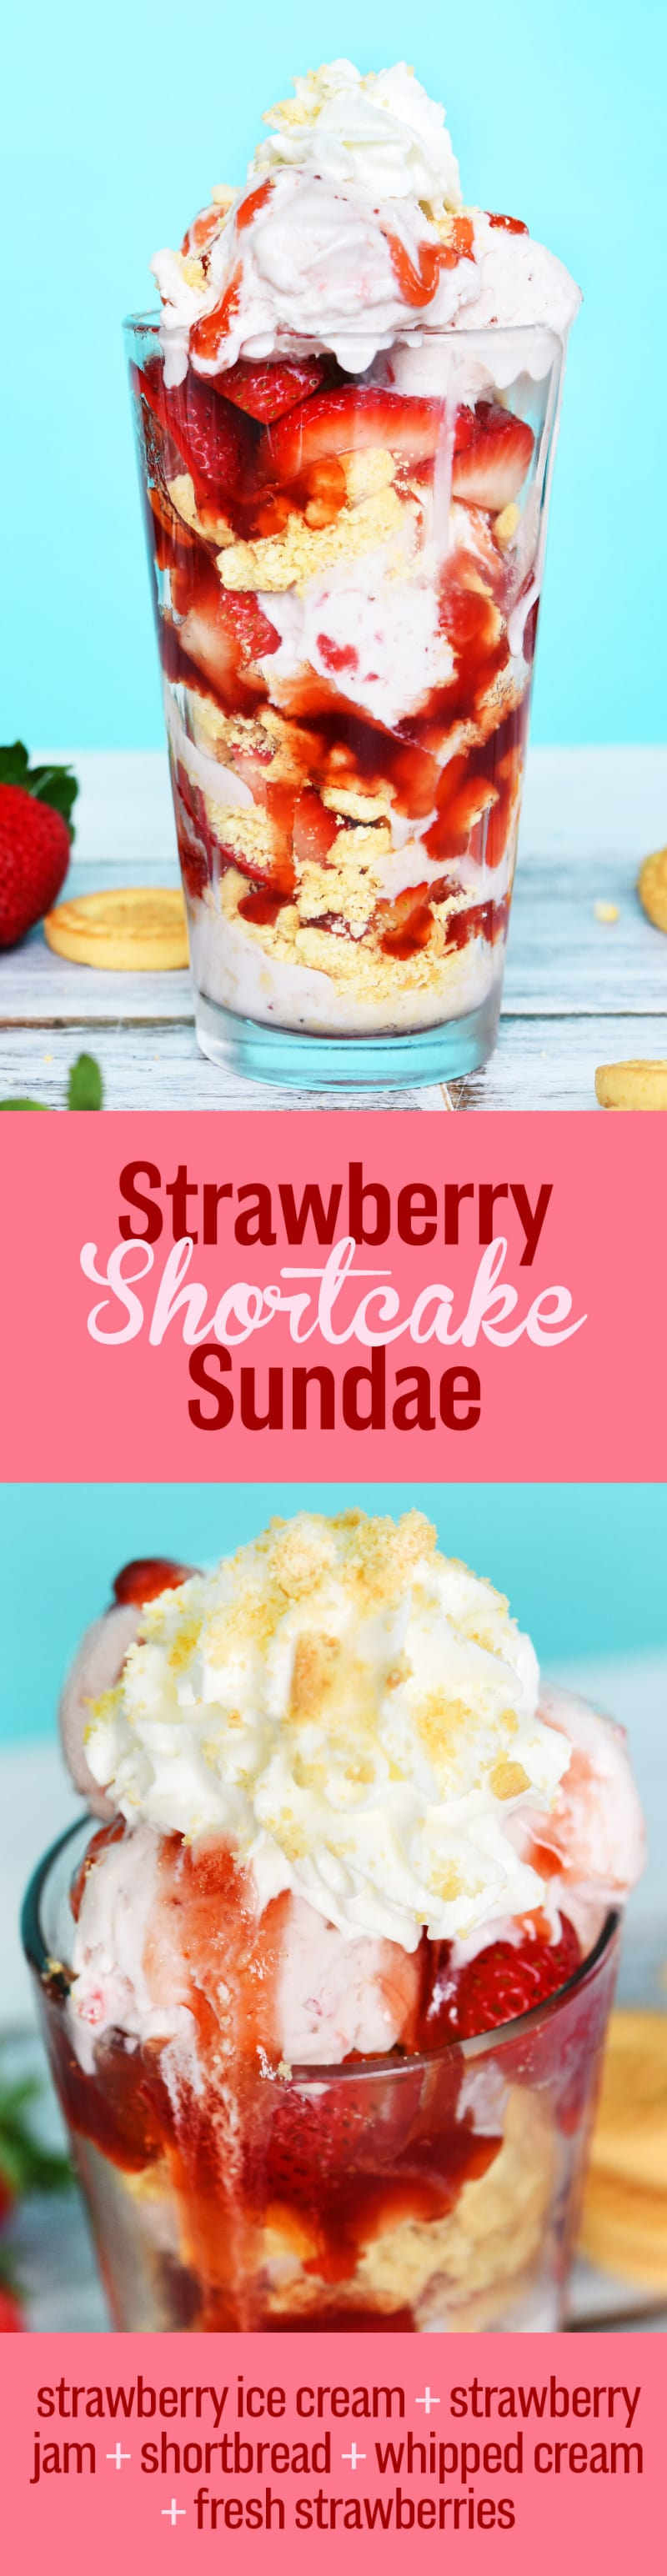 7 insanely delicious sundaes you need to eat before summer